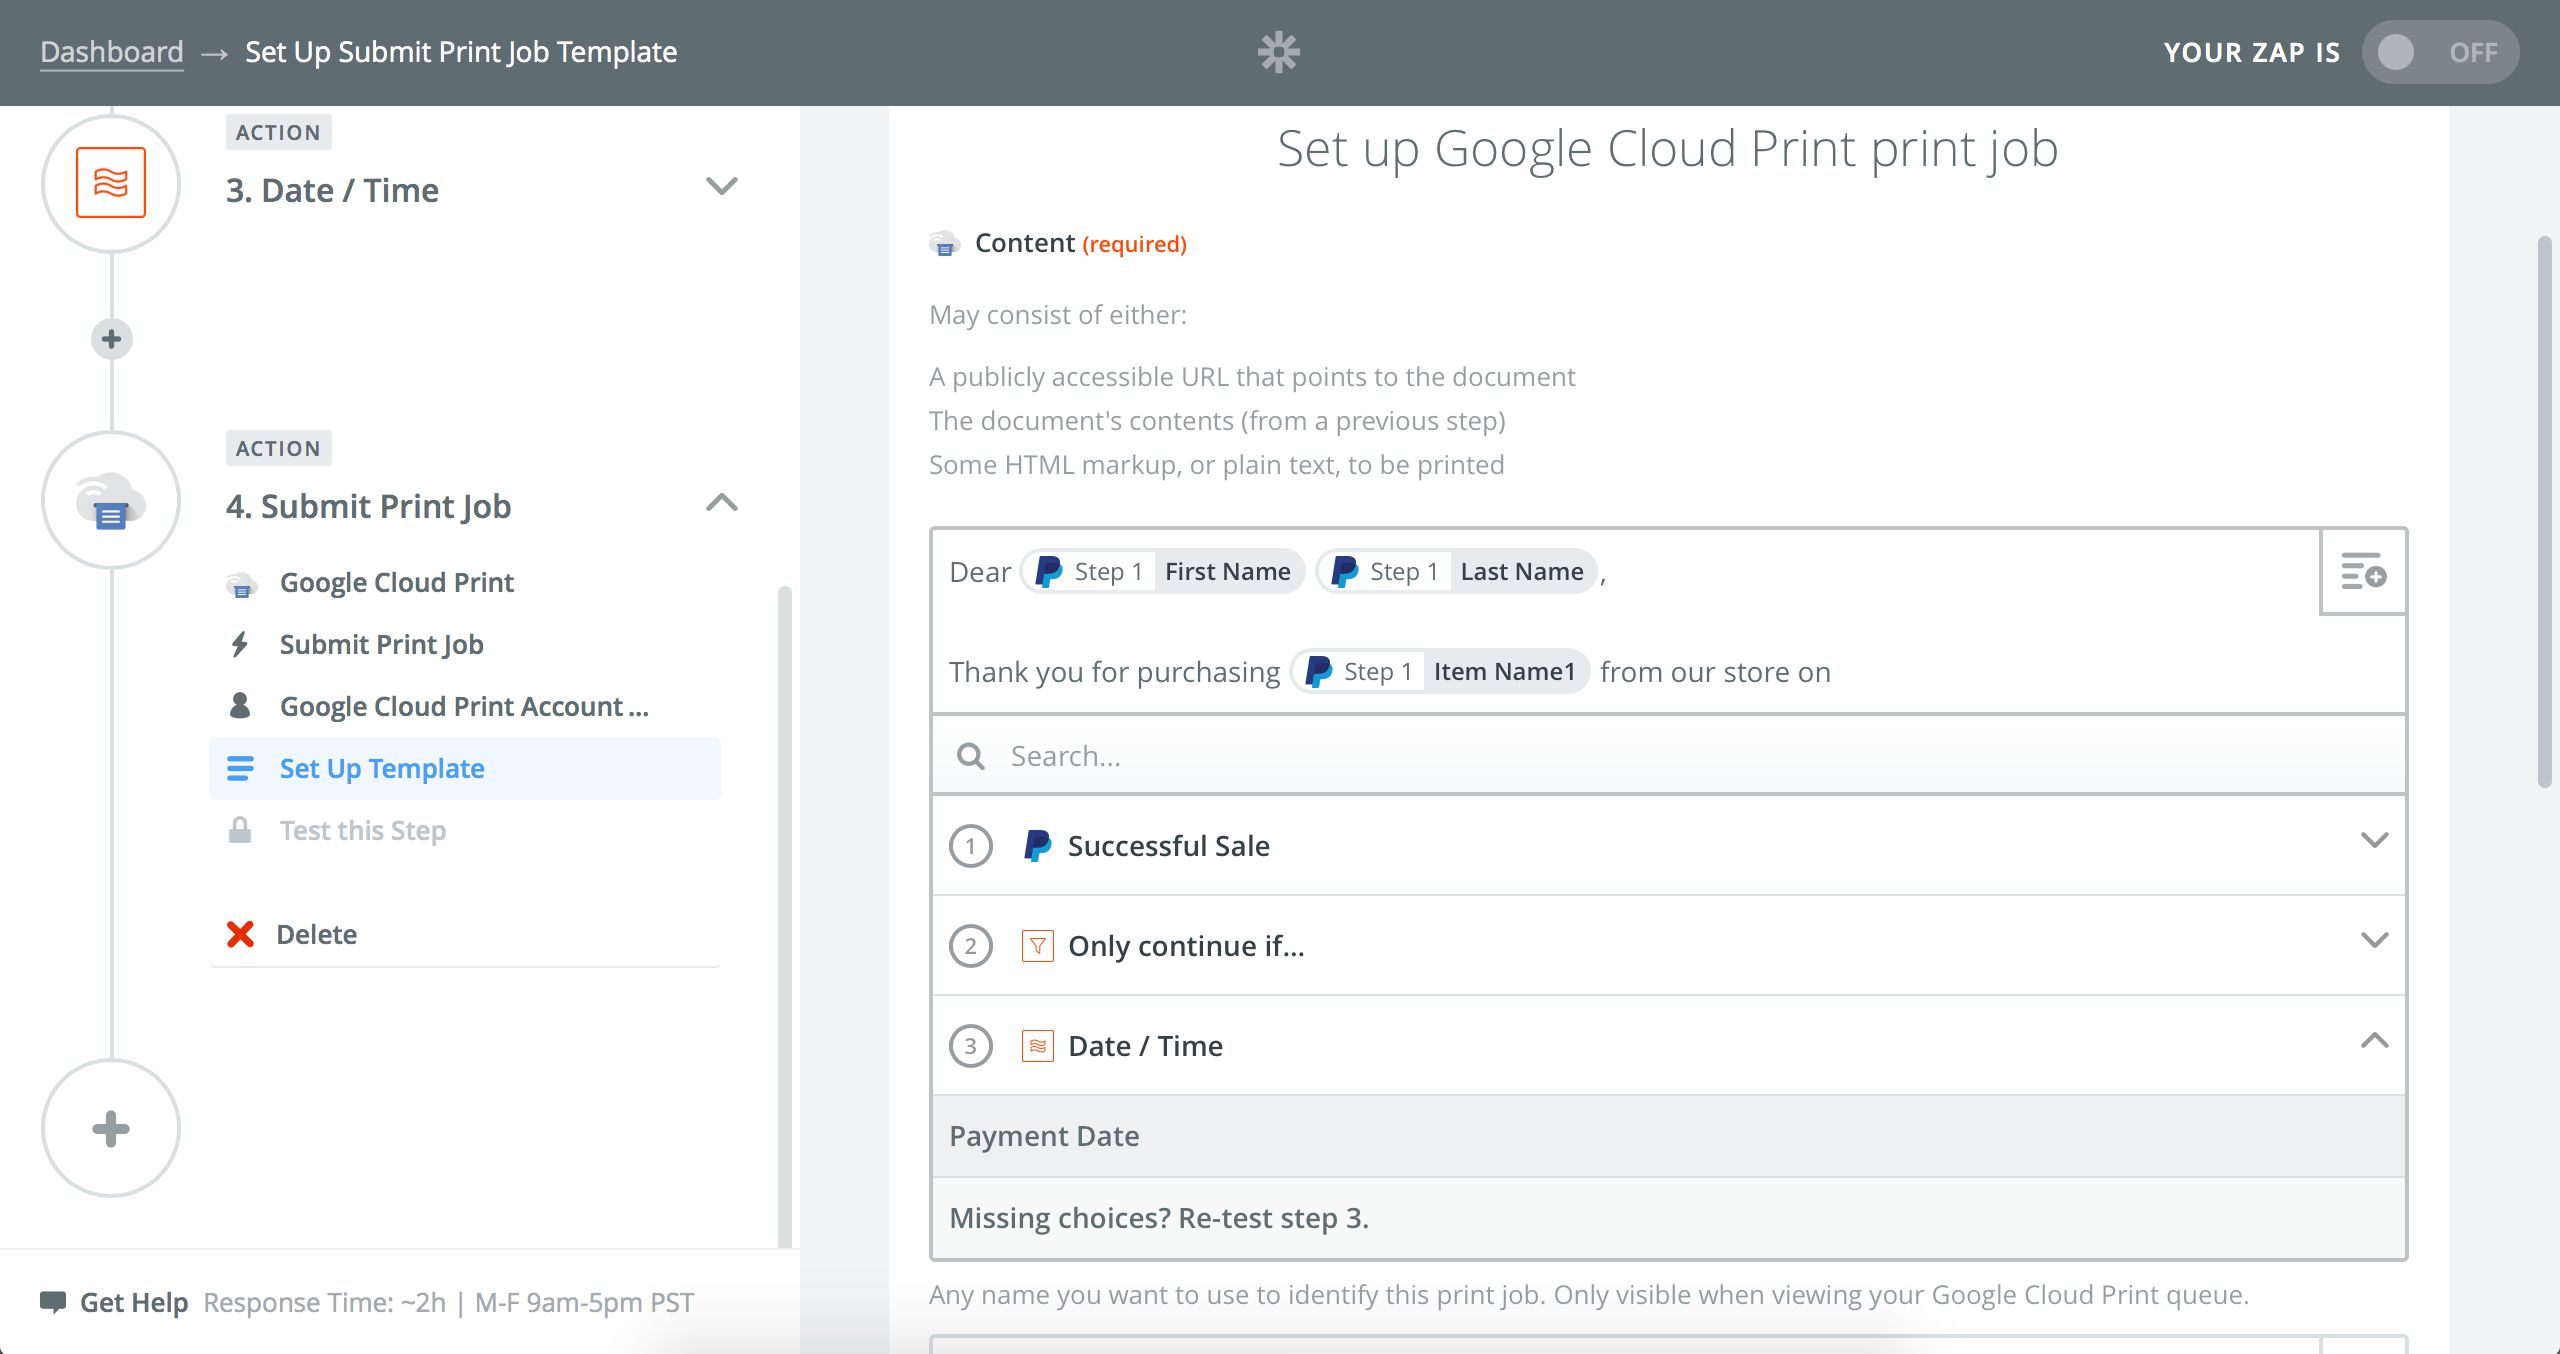 Google Cloud Print Zap